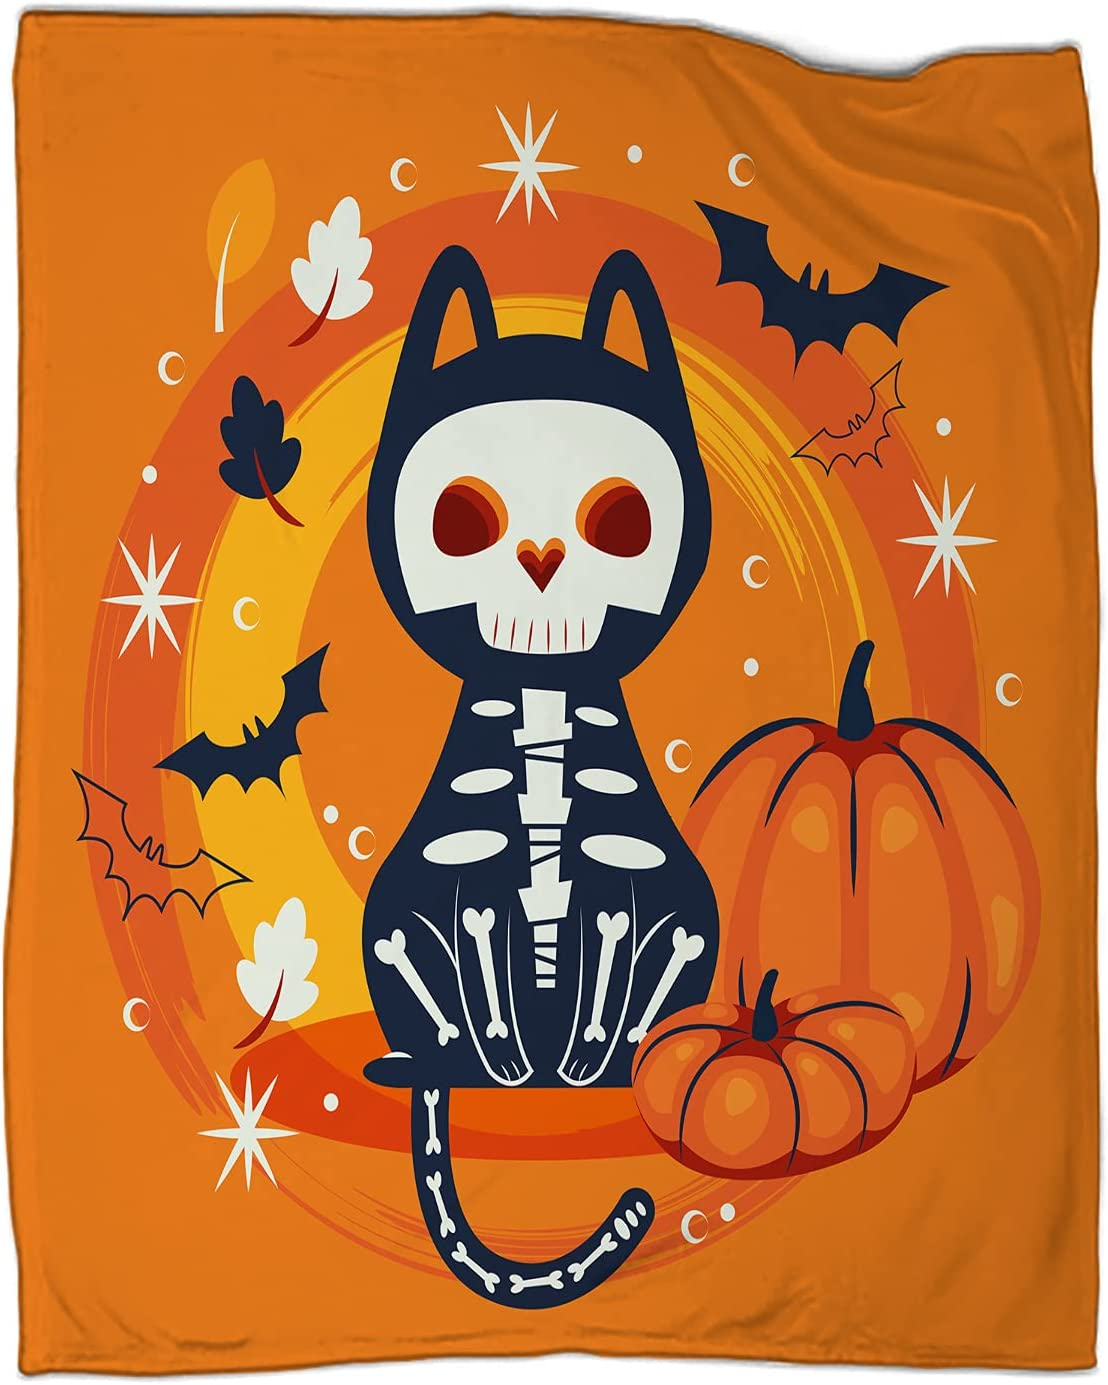 Halloween Cat Disguised of 5 Max 79% OFF ☆ popular Skull Blanket Soft Coz Character